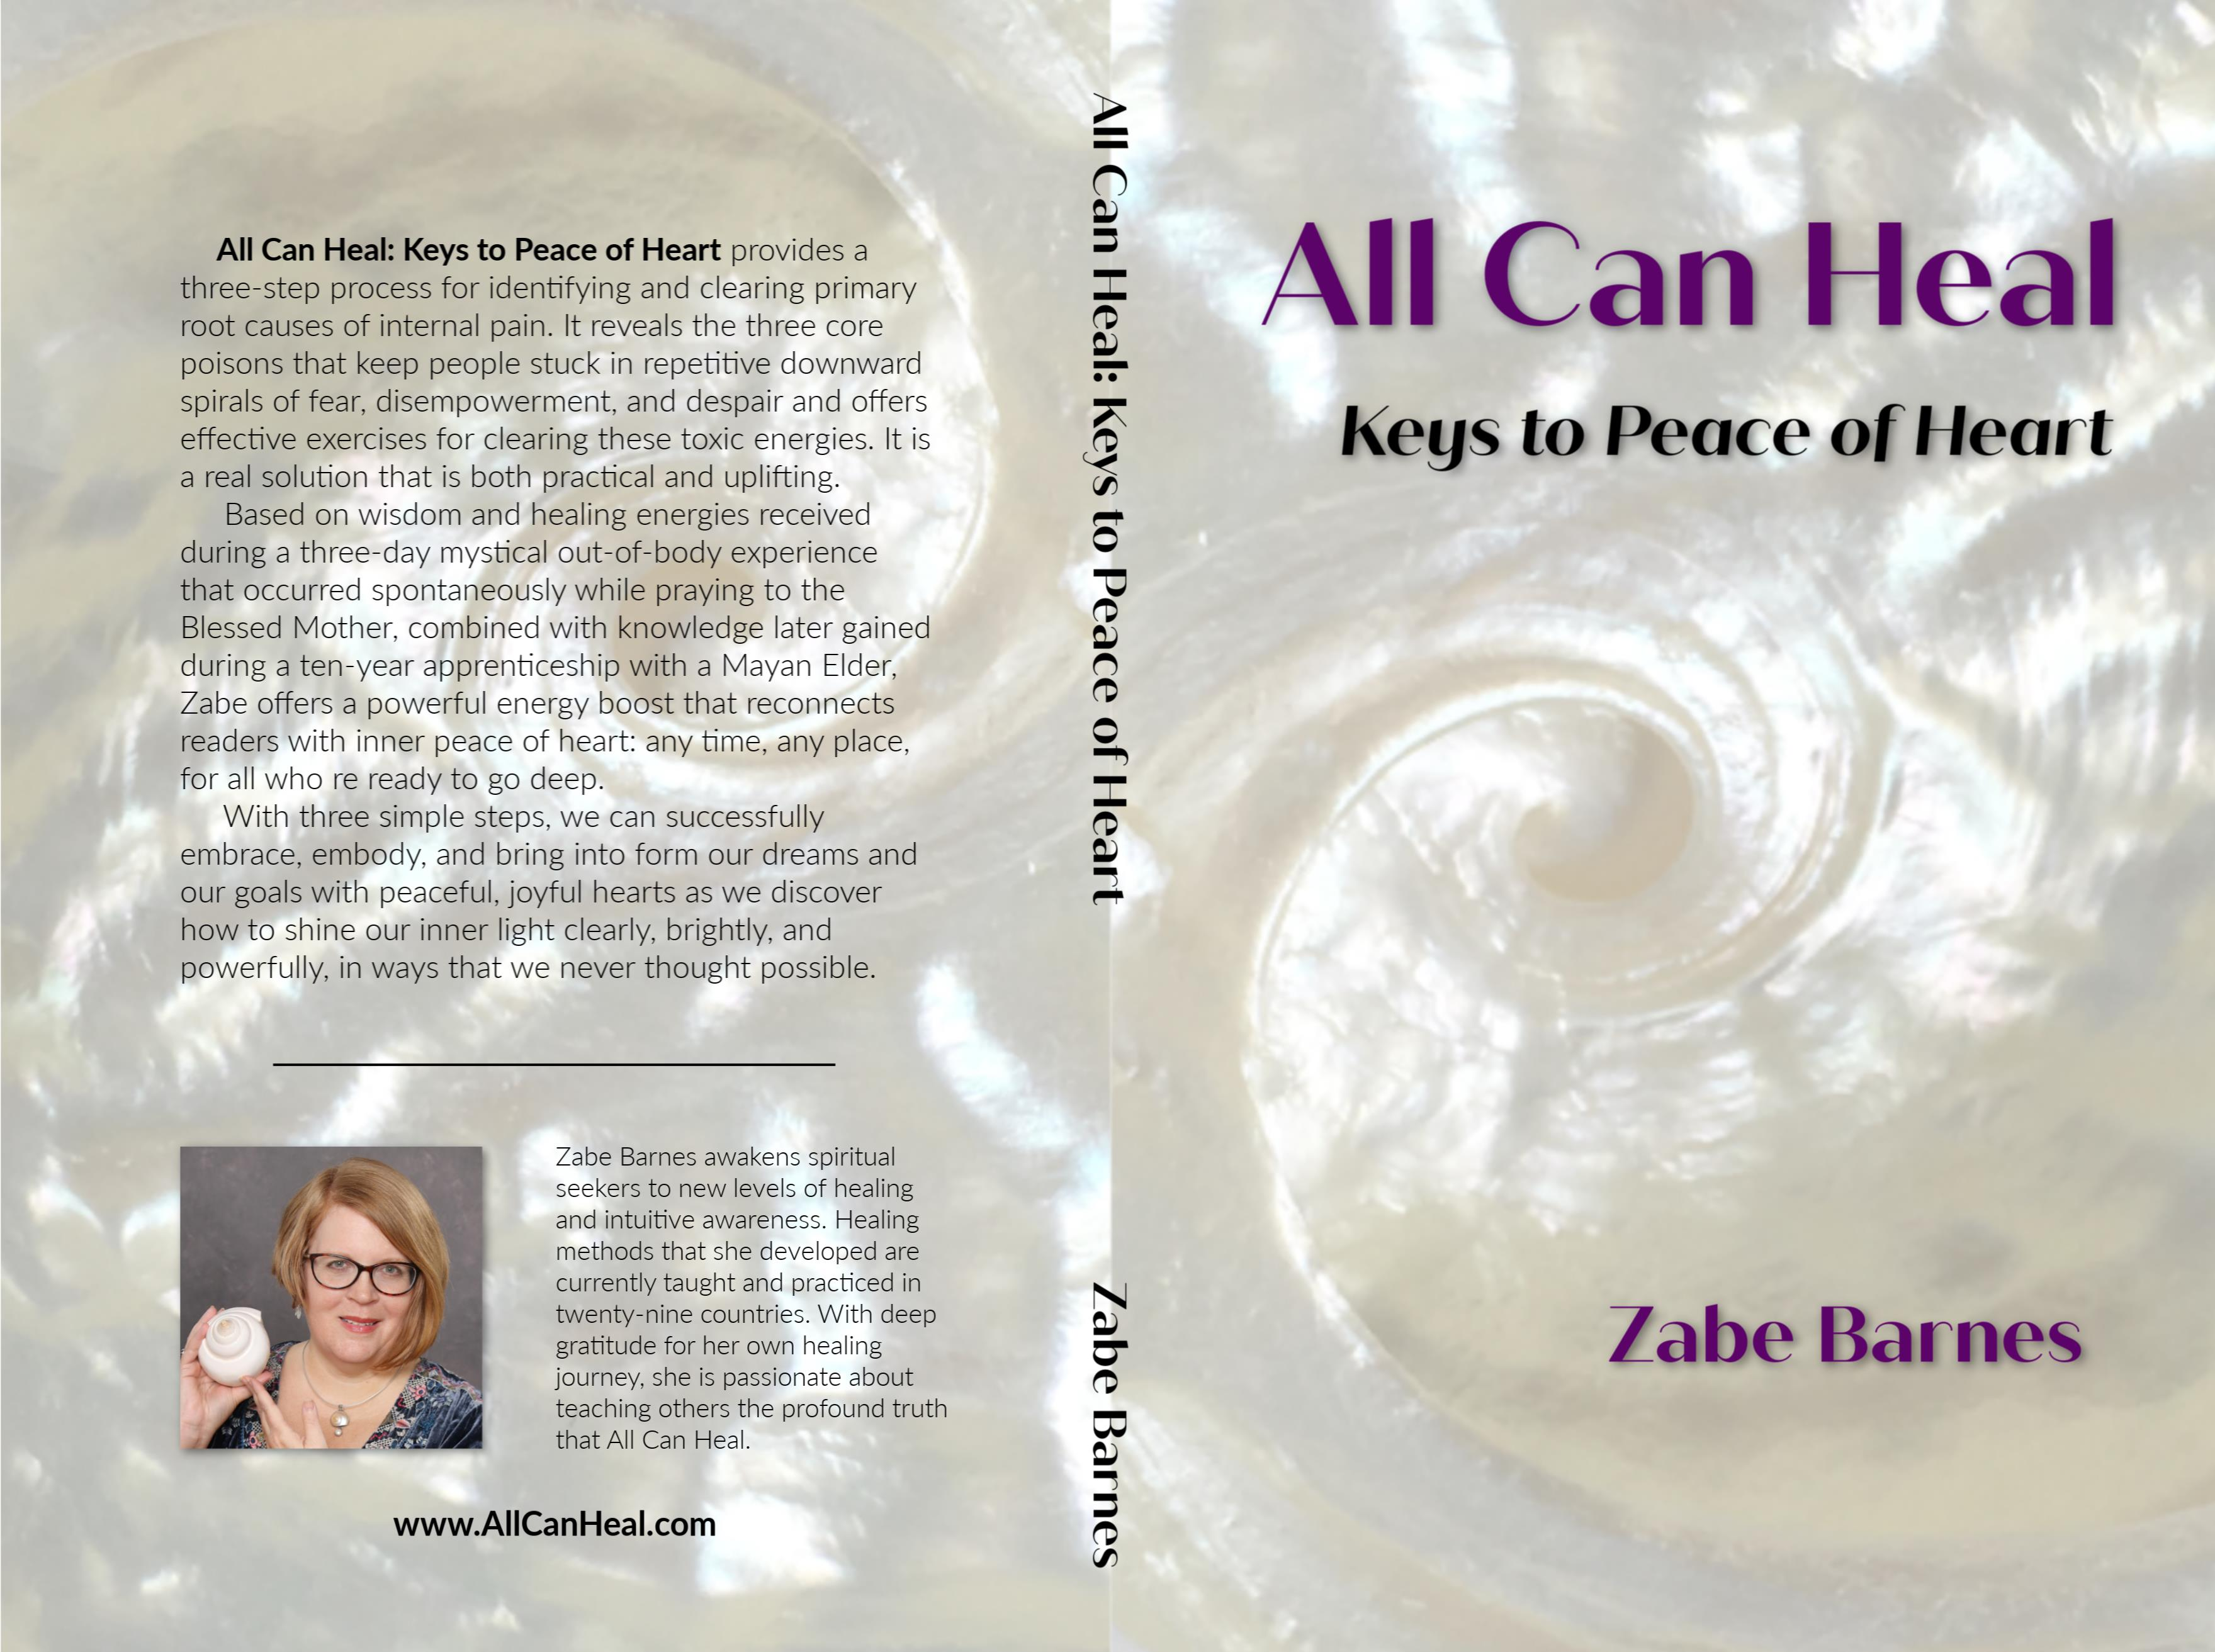 All Can Heal: Keys to Peace of Heart cover image